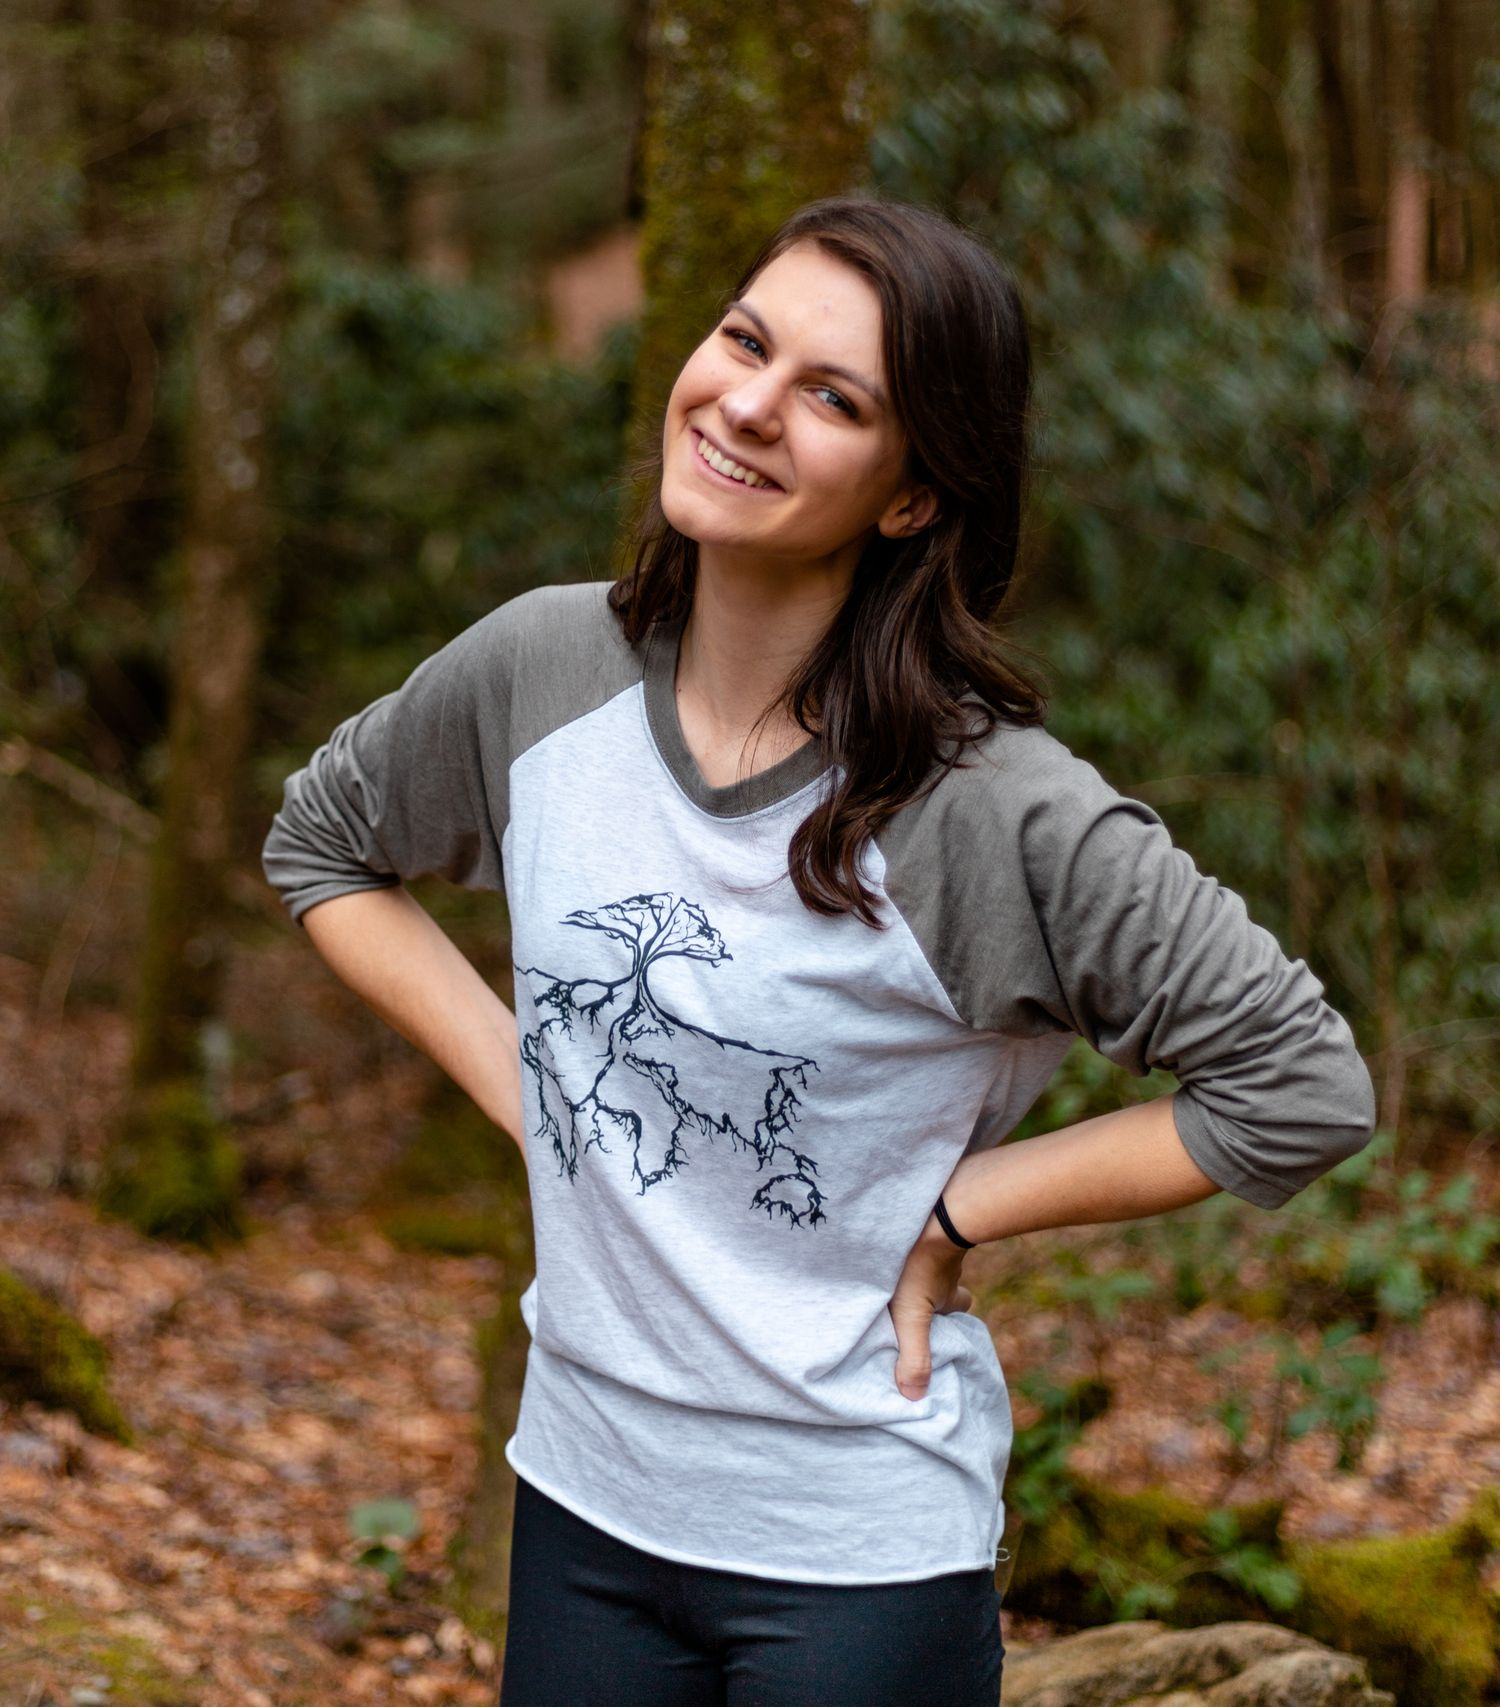 Sarah Swainson wearing Burlaep clothing in the forest.